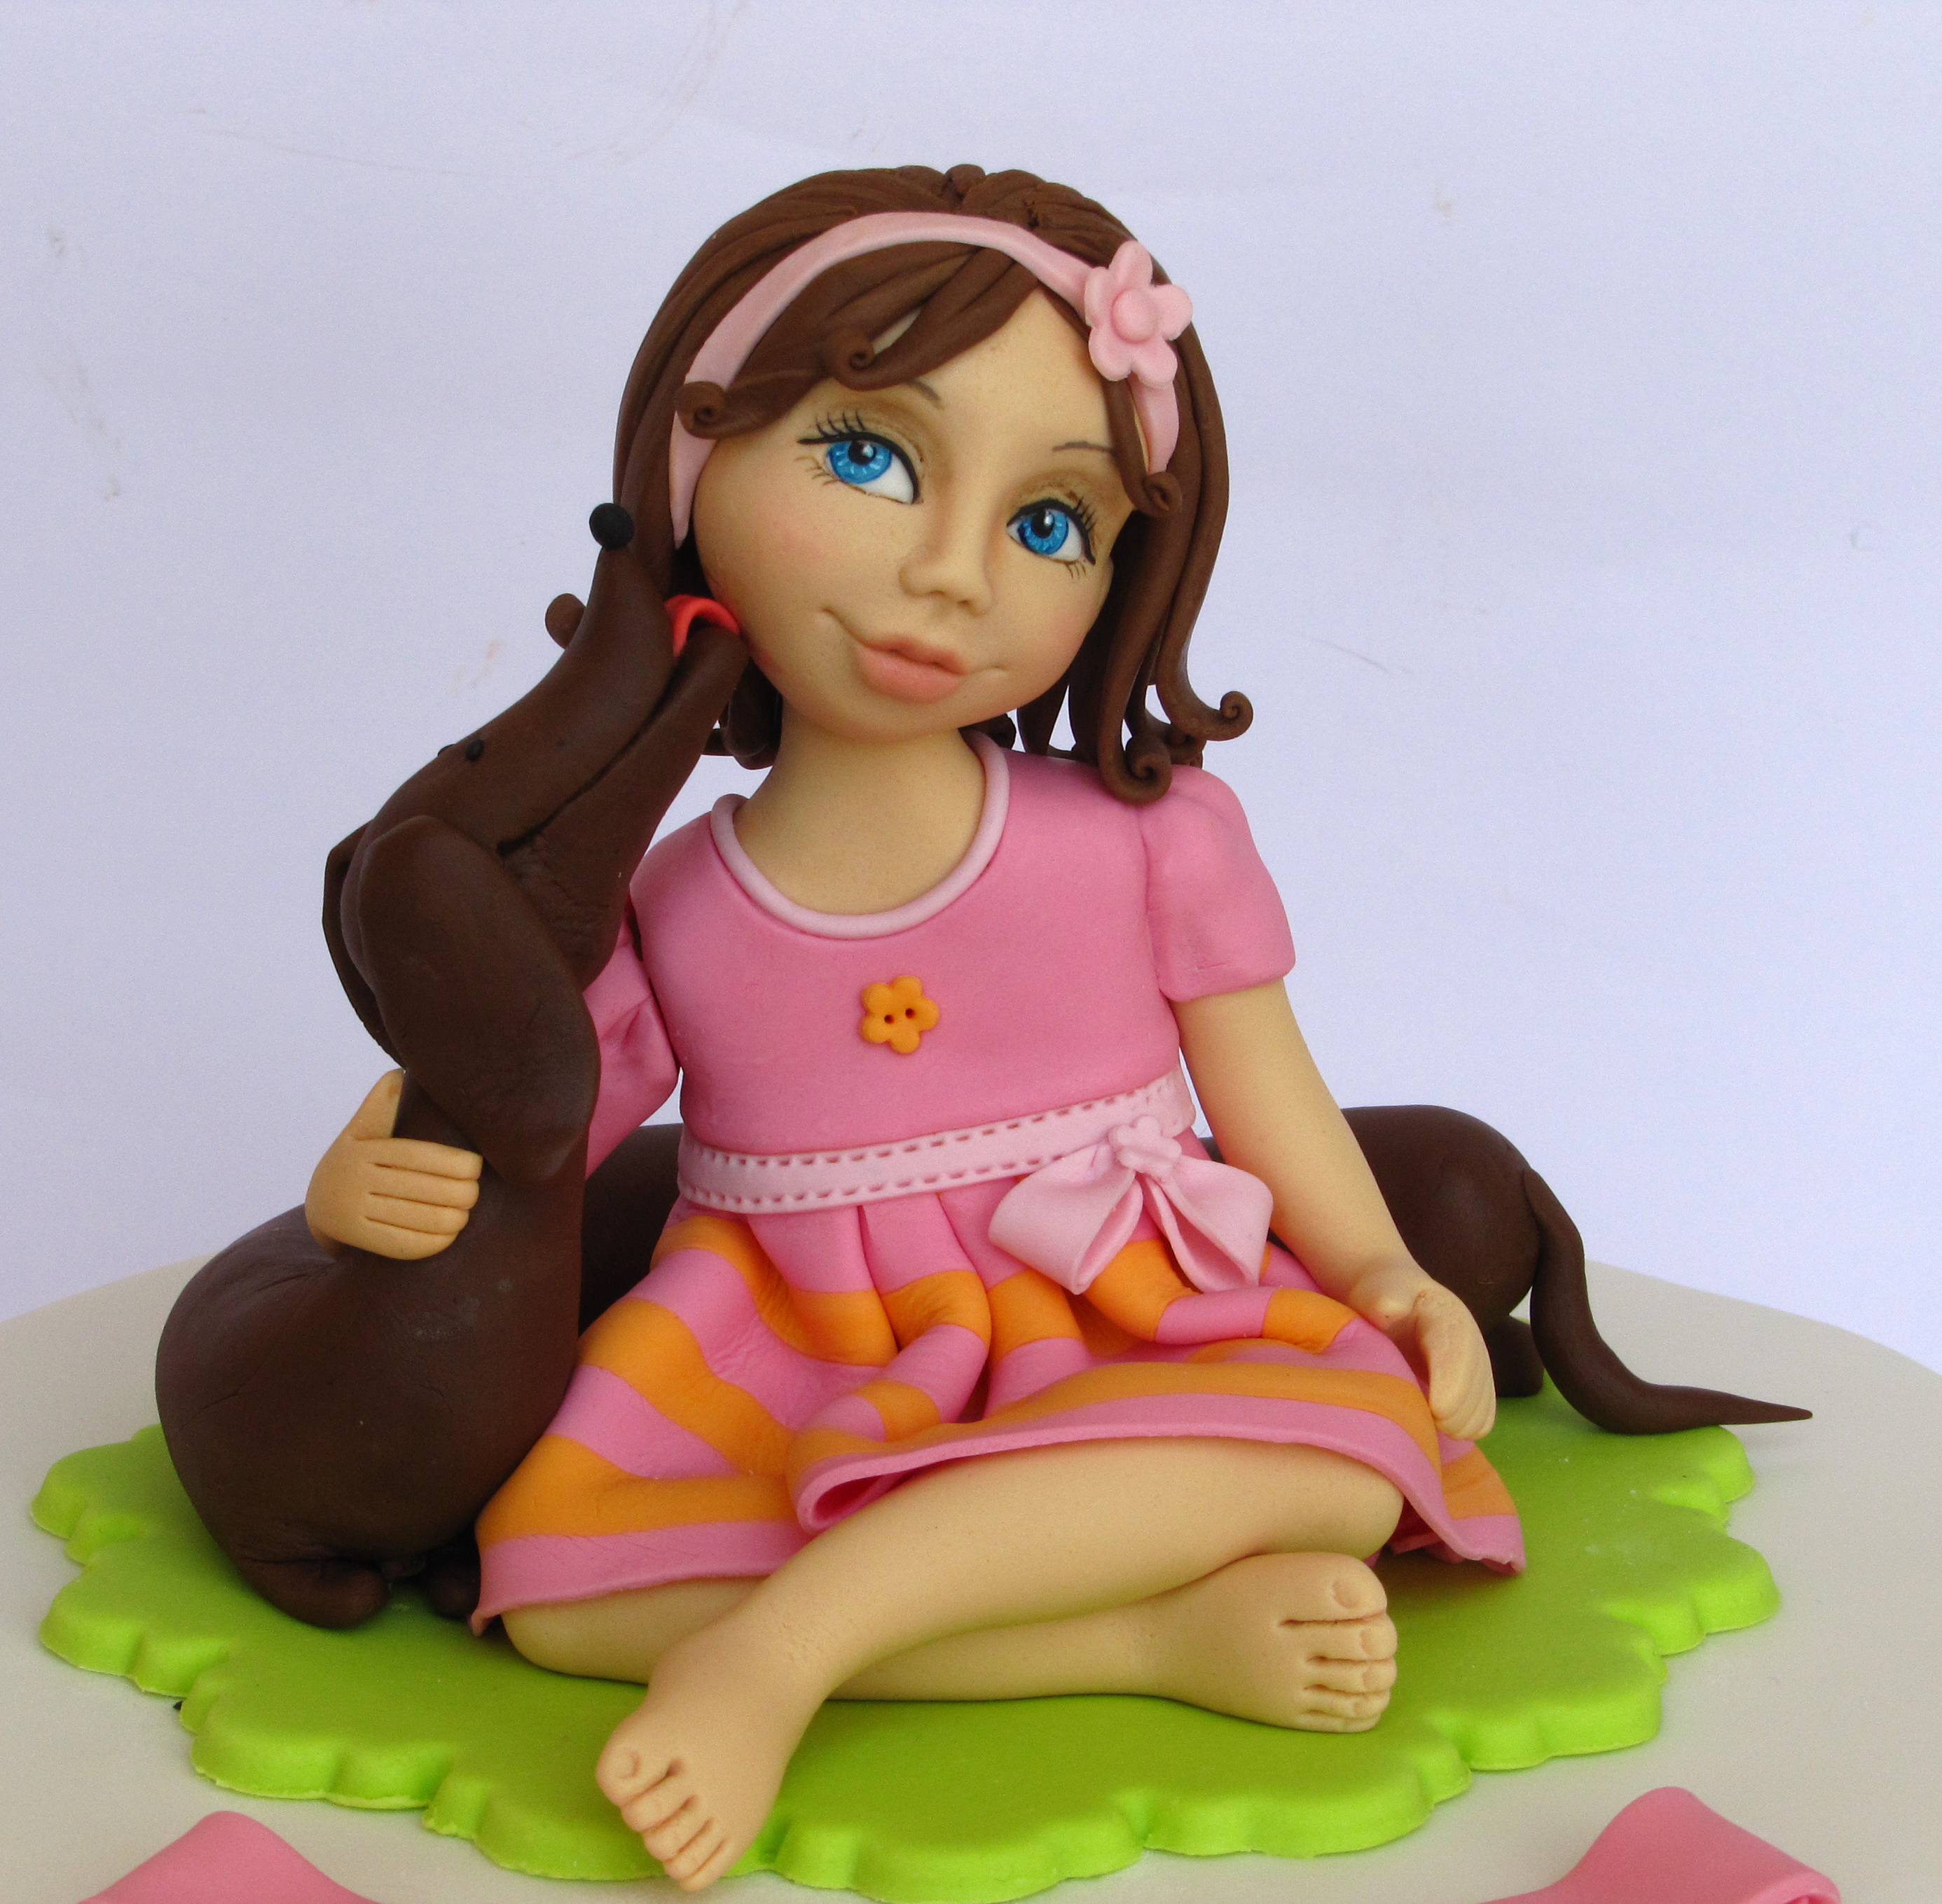 Girl with Puppy fondant figurine